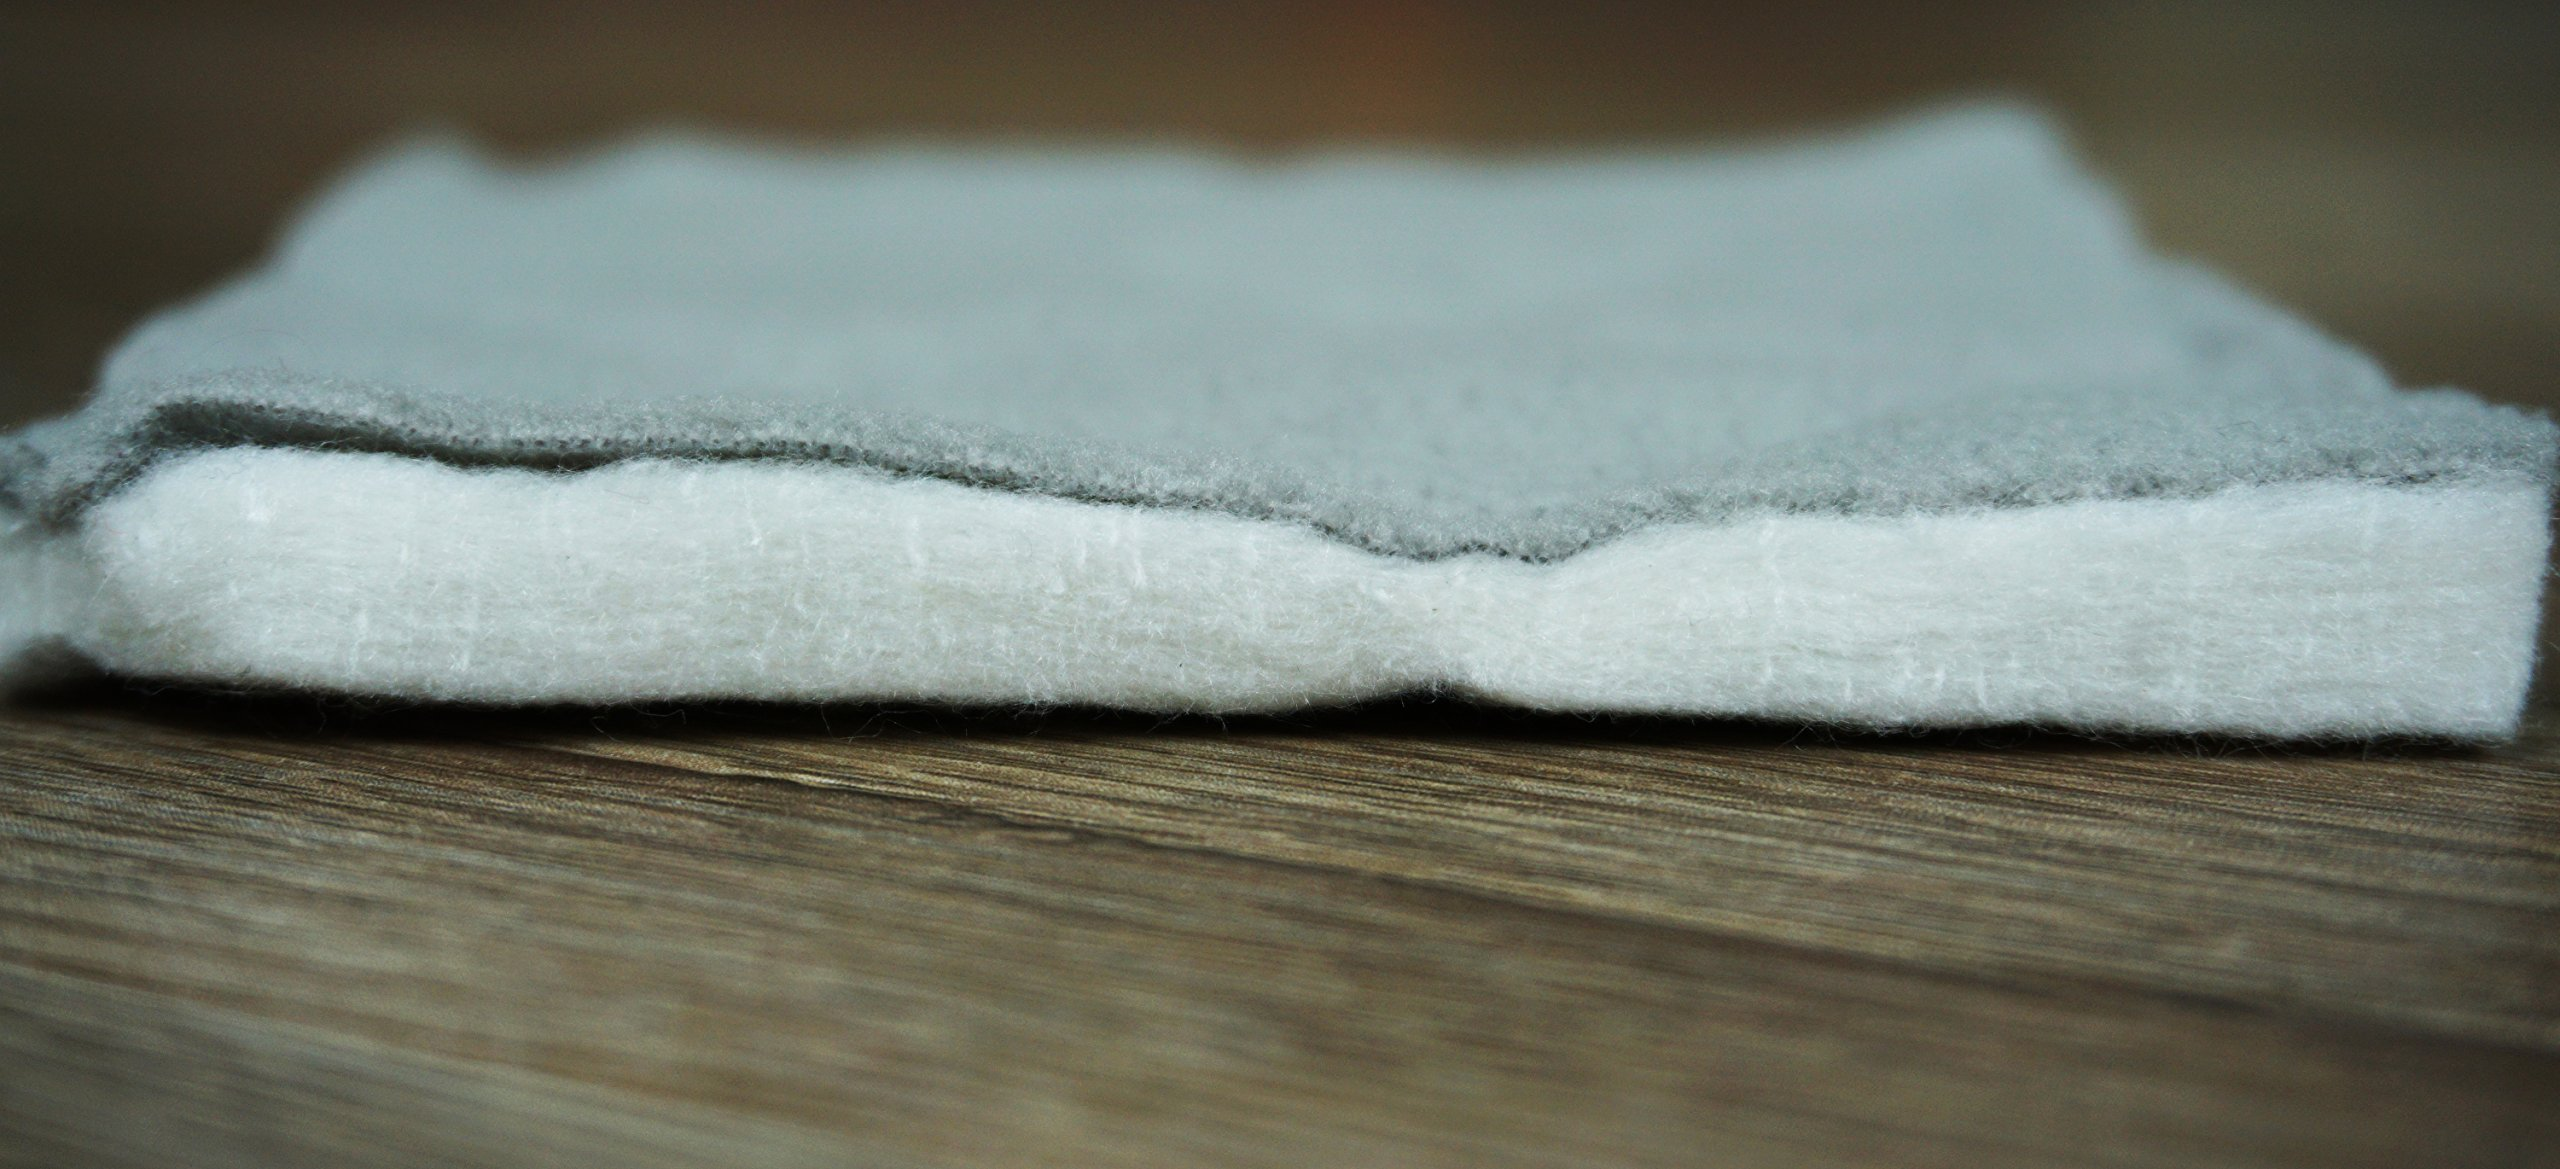 GuineaDad Fleece Liner 2.0 | Guinea Pig Fleece Cage Liners Bedding | Burrowing Pocket Sleeve | Extra Absorbent Antibacterial Bamboo | Waterproof | Available Various Cage Sizes by GuineaDad (Image #4)